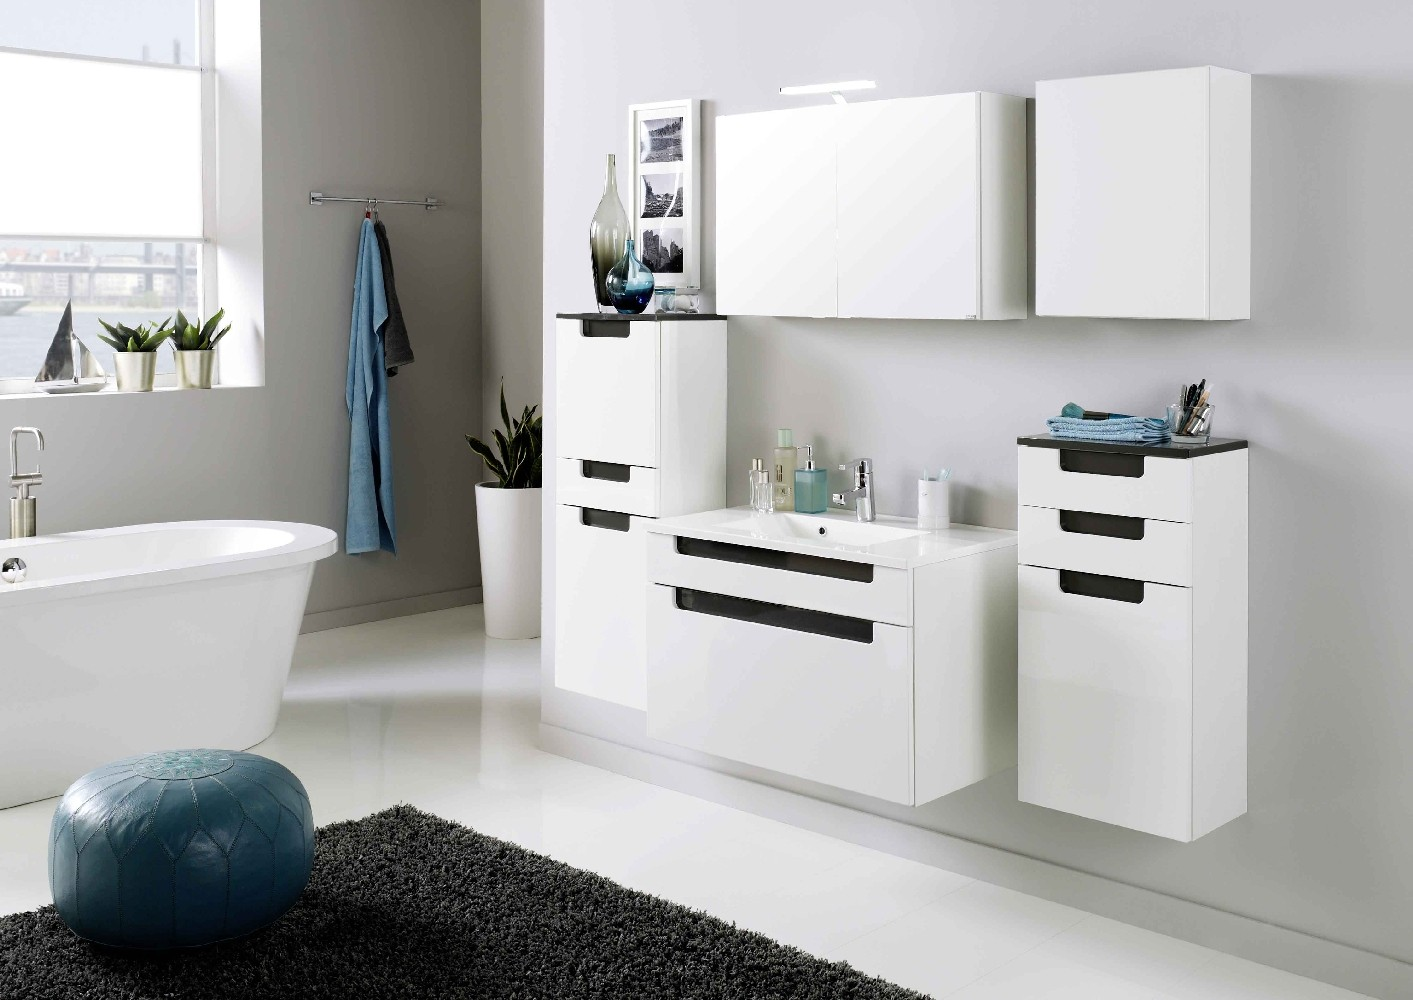 bad unterschrank siena 1 t rig 2 schubladen 40 cm breit hochglanz wei anthrazit grau. Black Bedroom Furniture Sets. Home Design Ideas